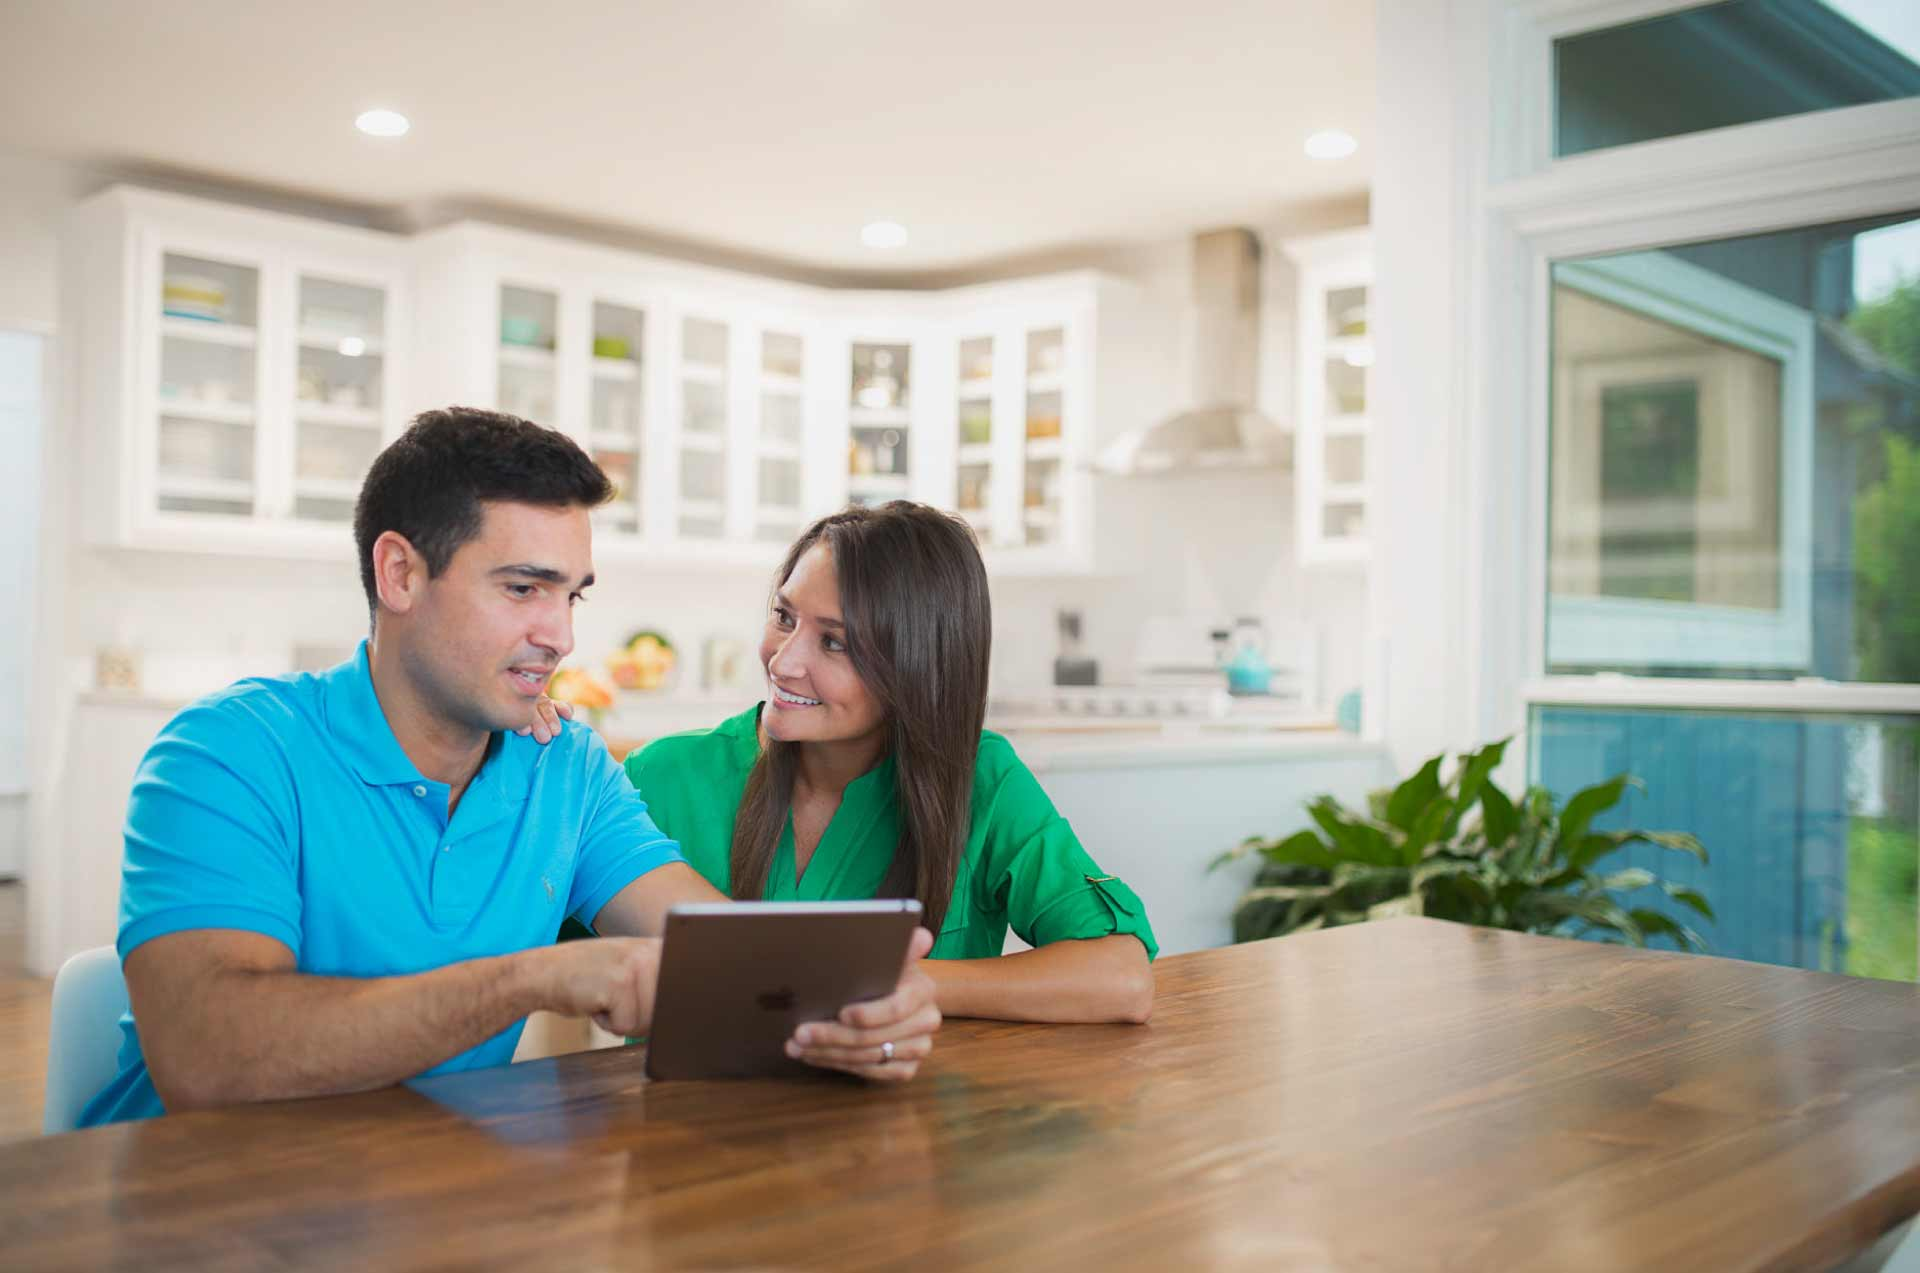 benefits-administration-new header image_people using tablet at home